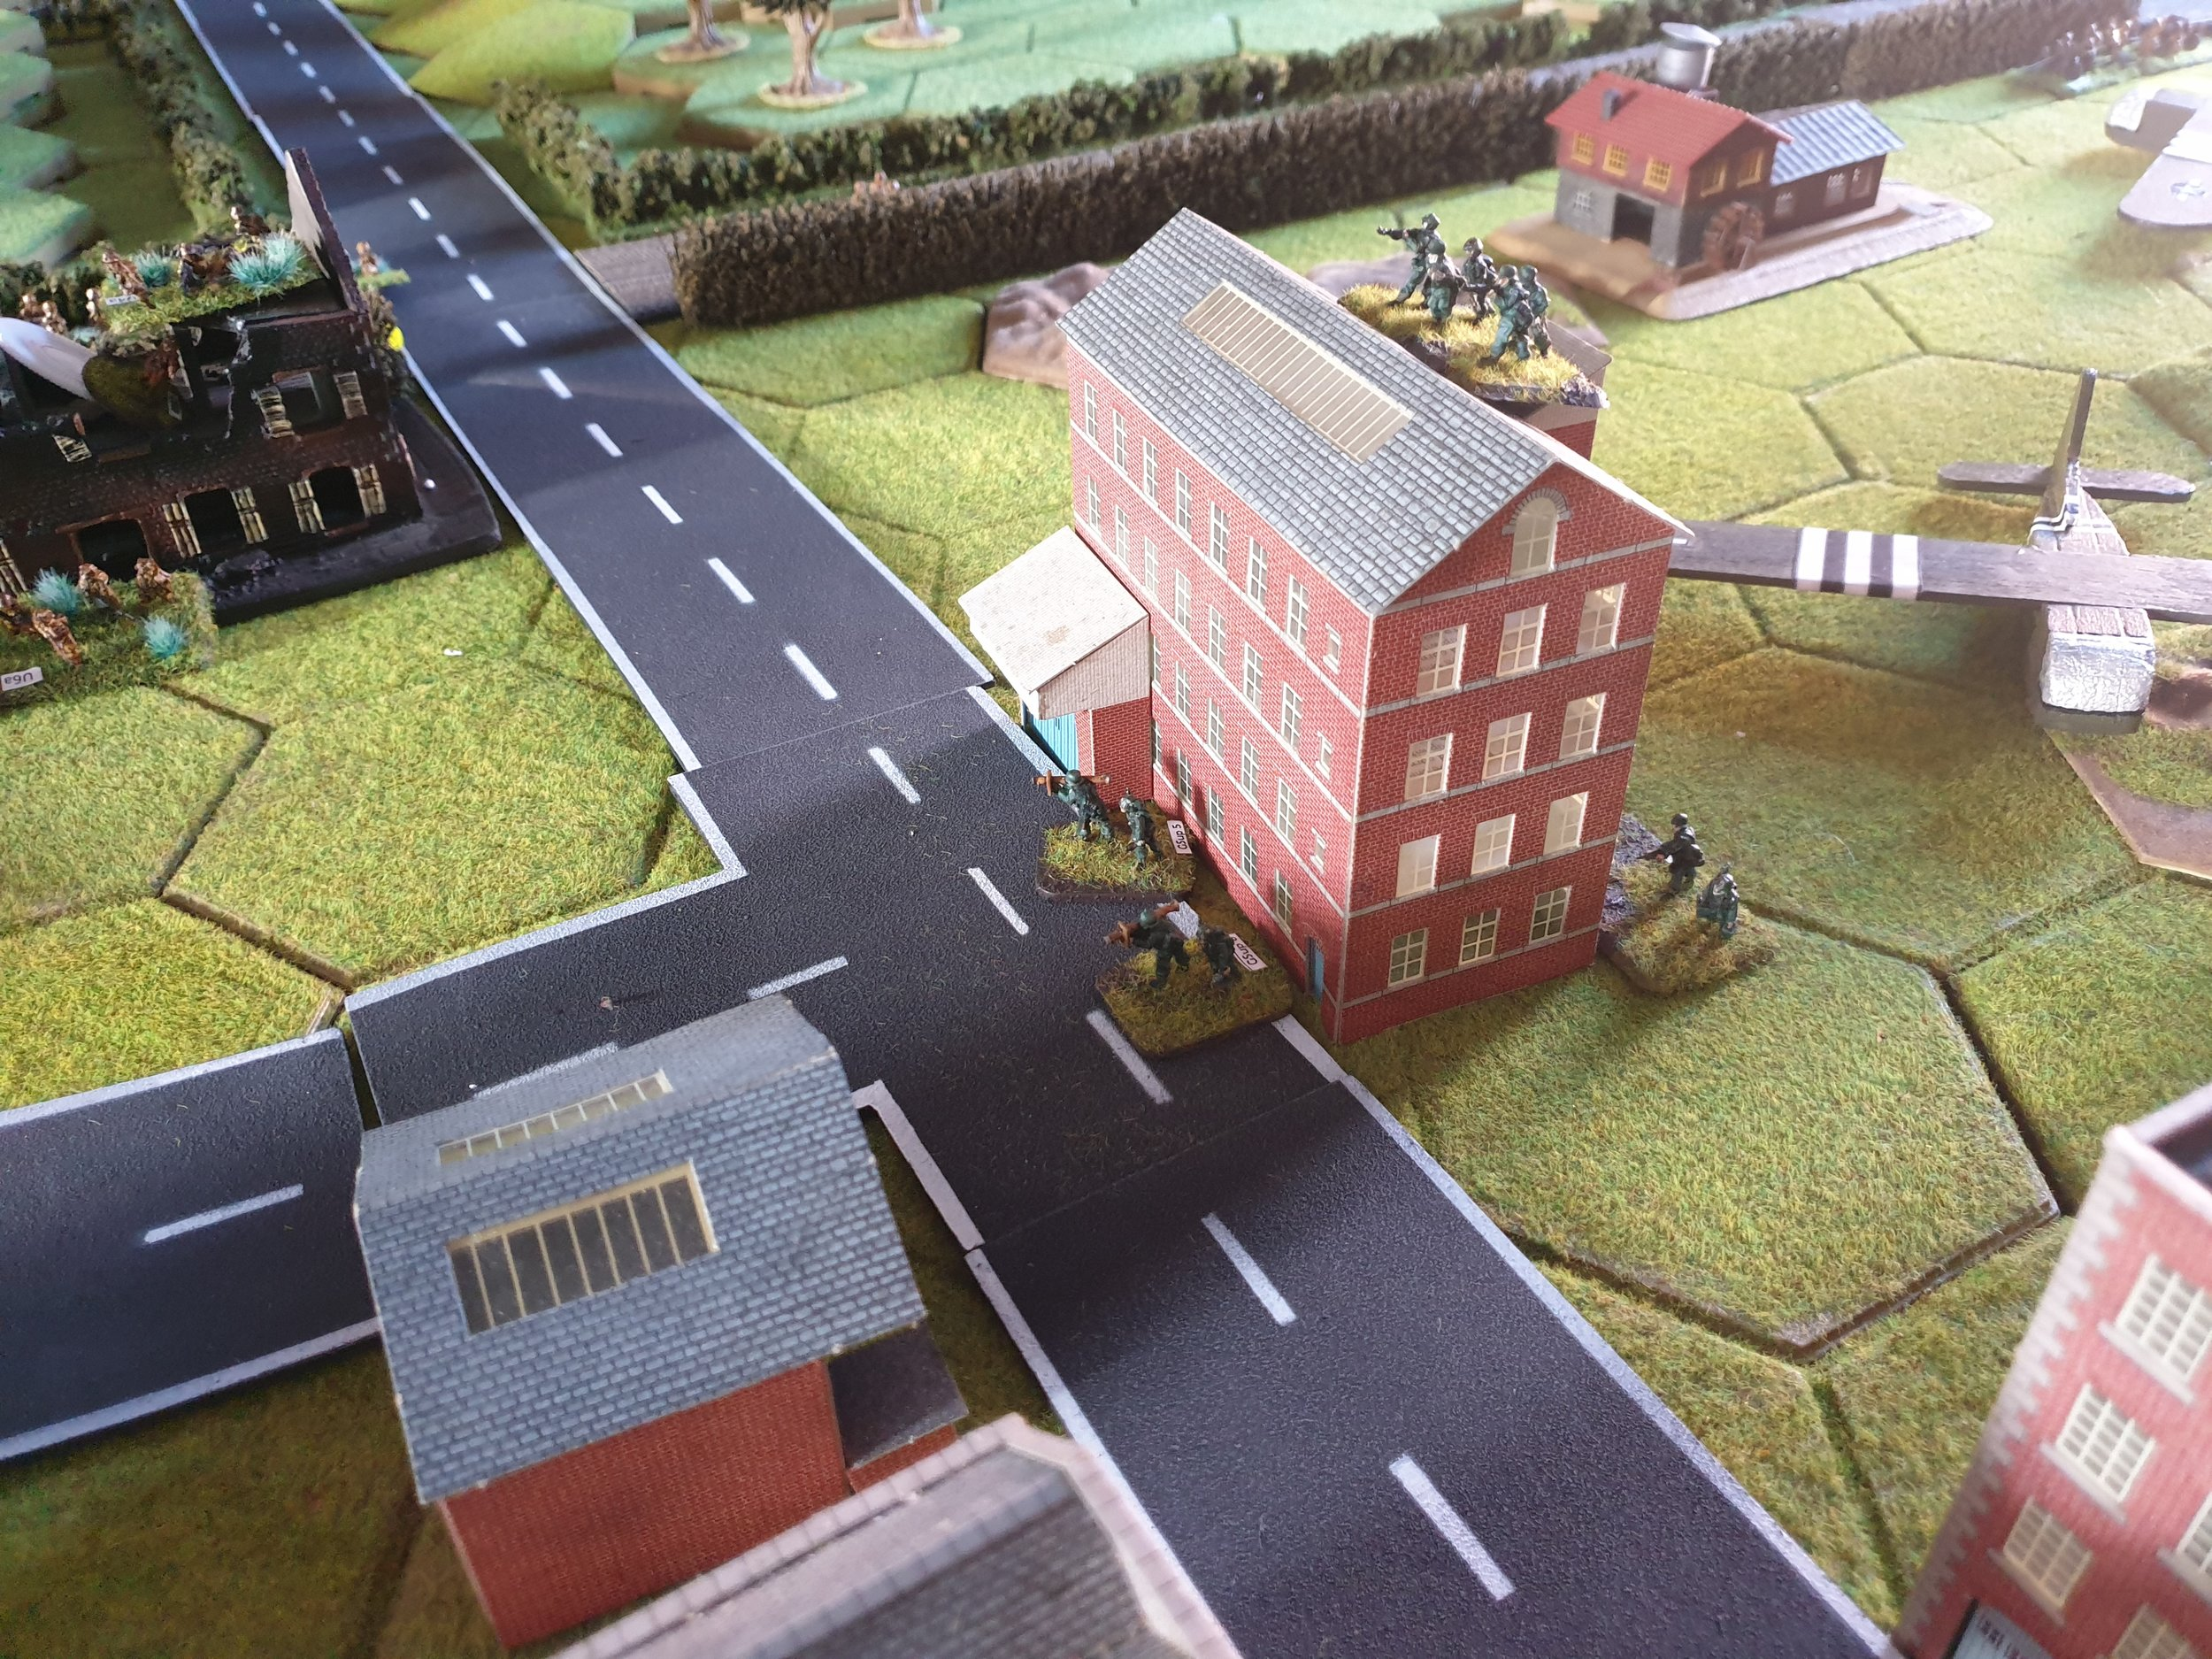 1st German squad on roof, figures at base are 2x Panzershrek teams taken off Blinds later